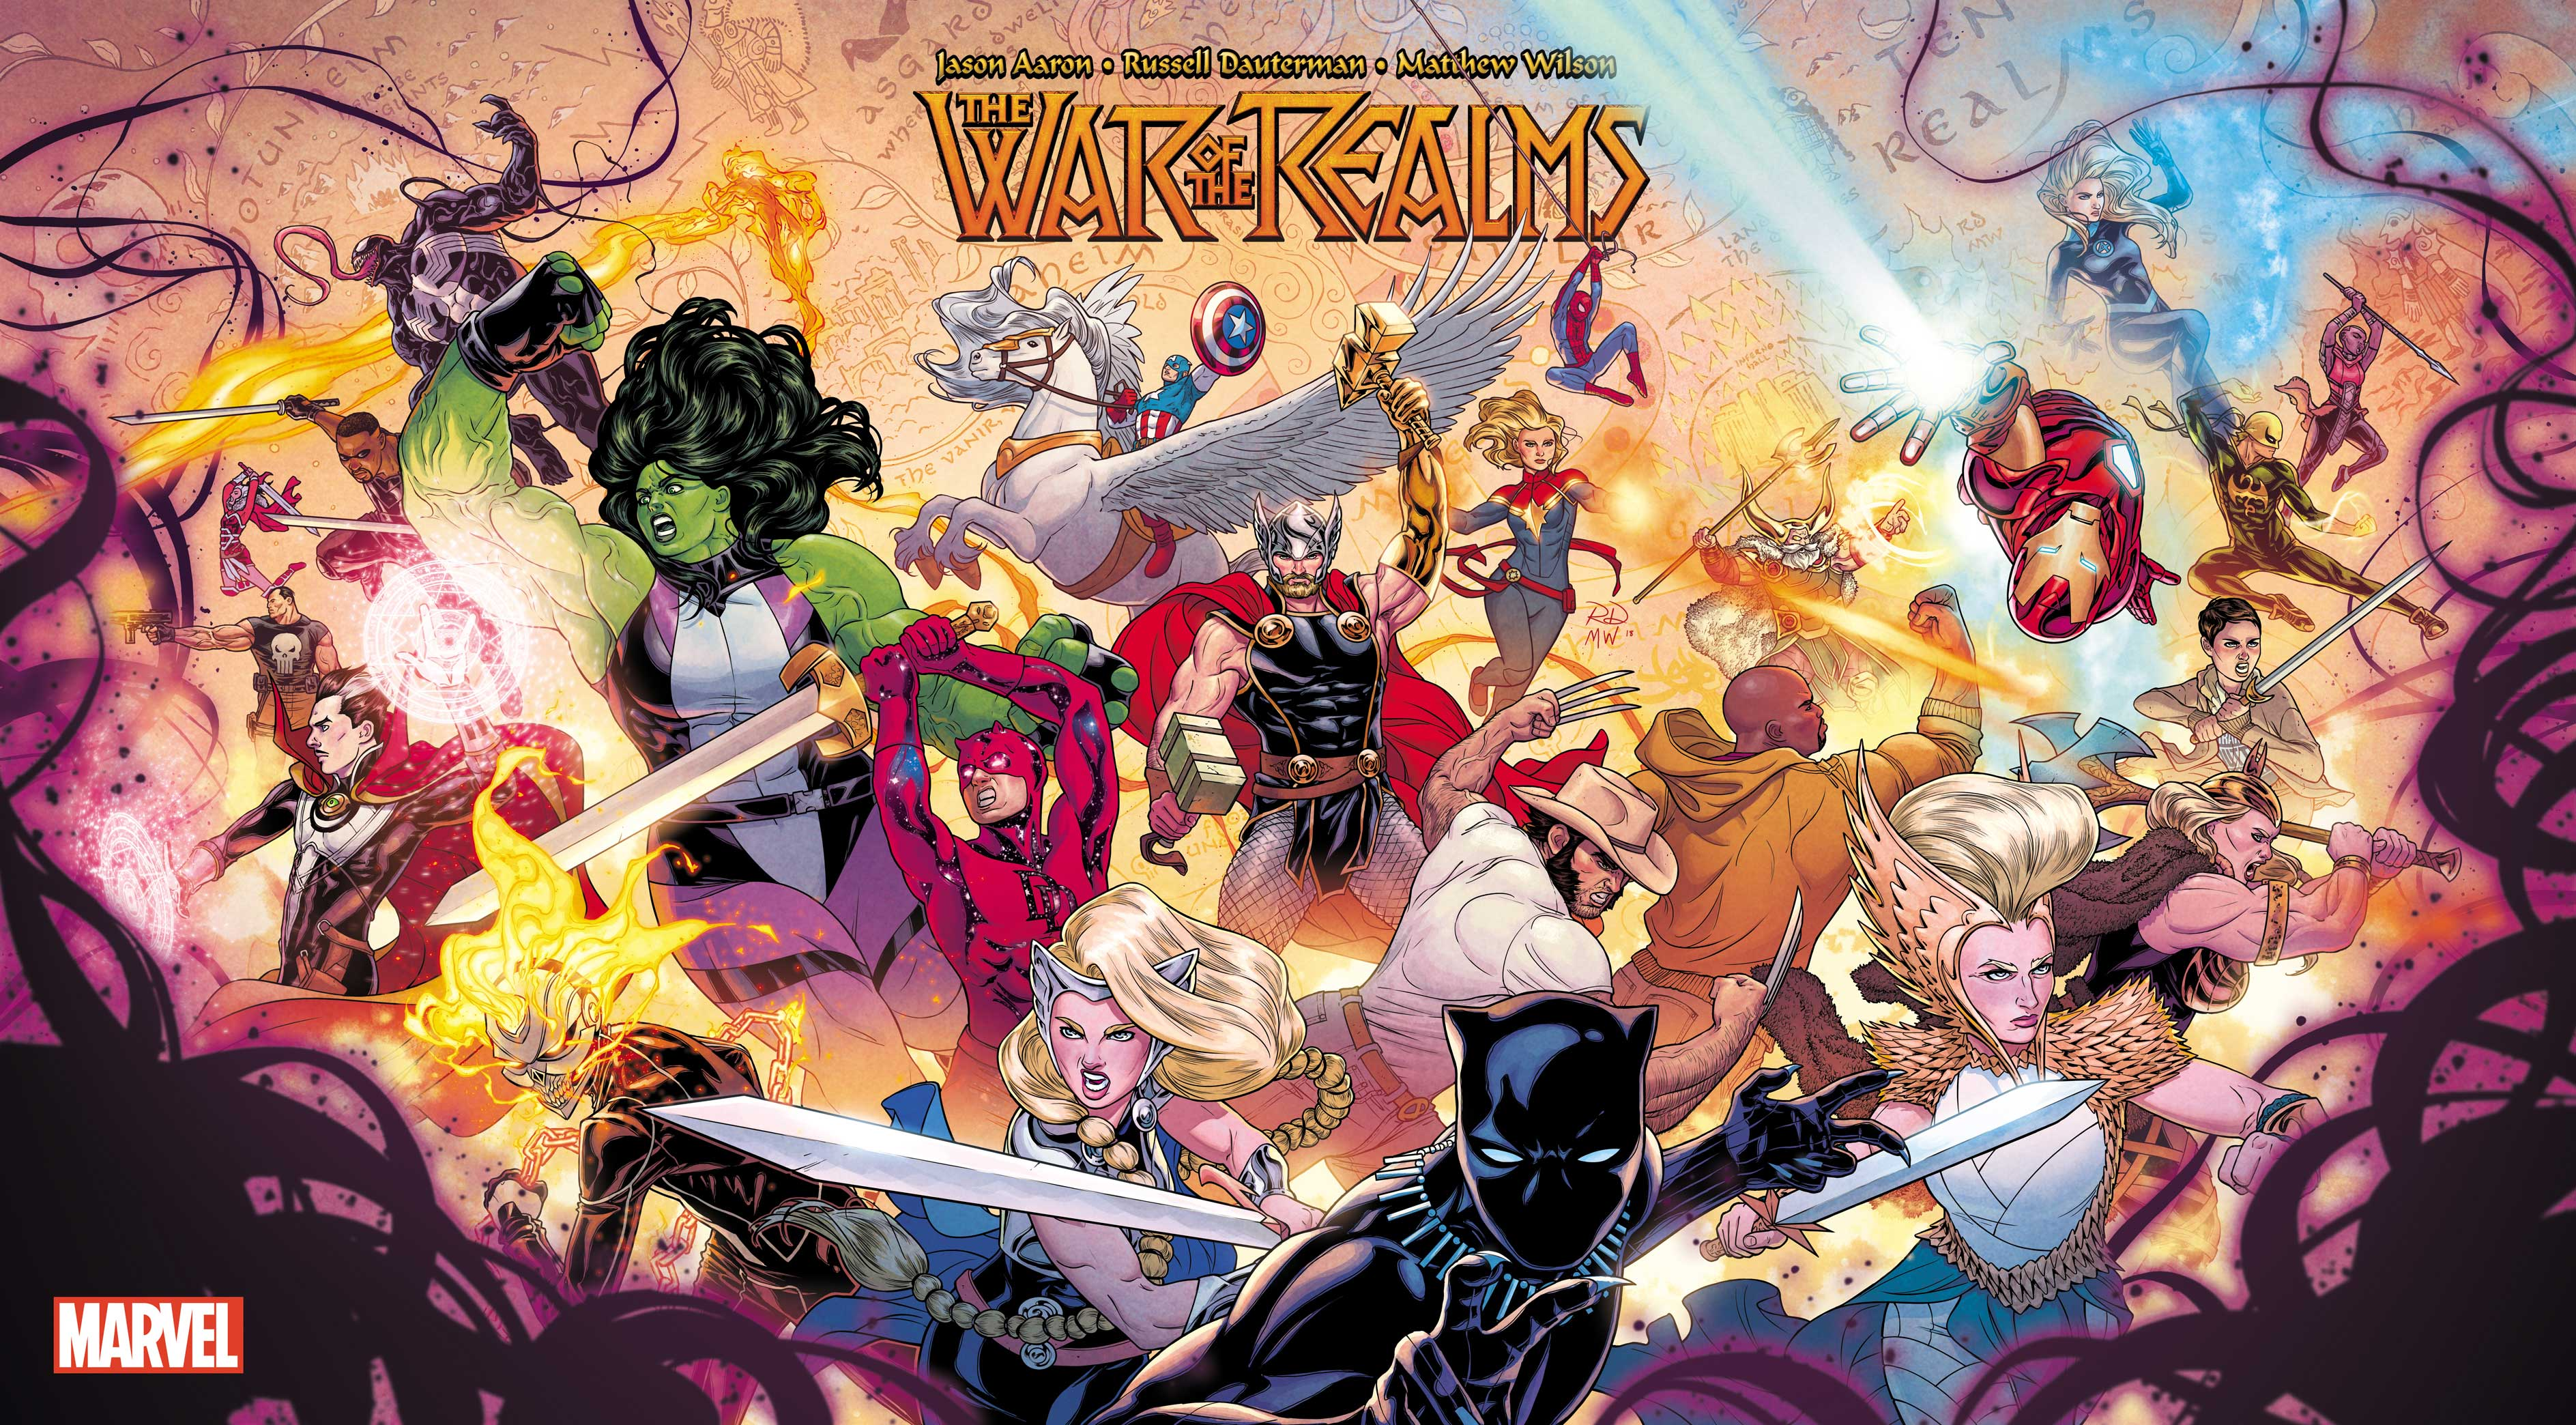 War of Realms